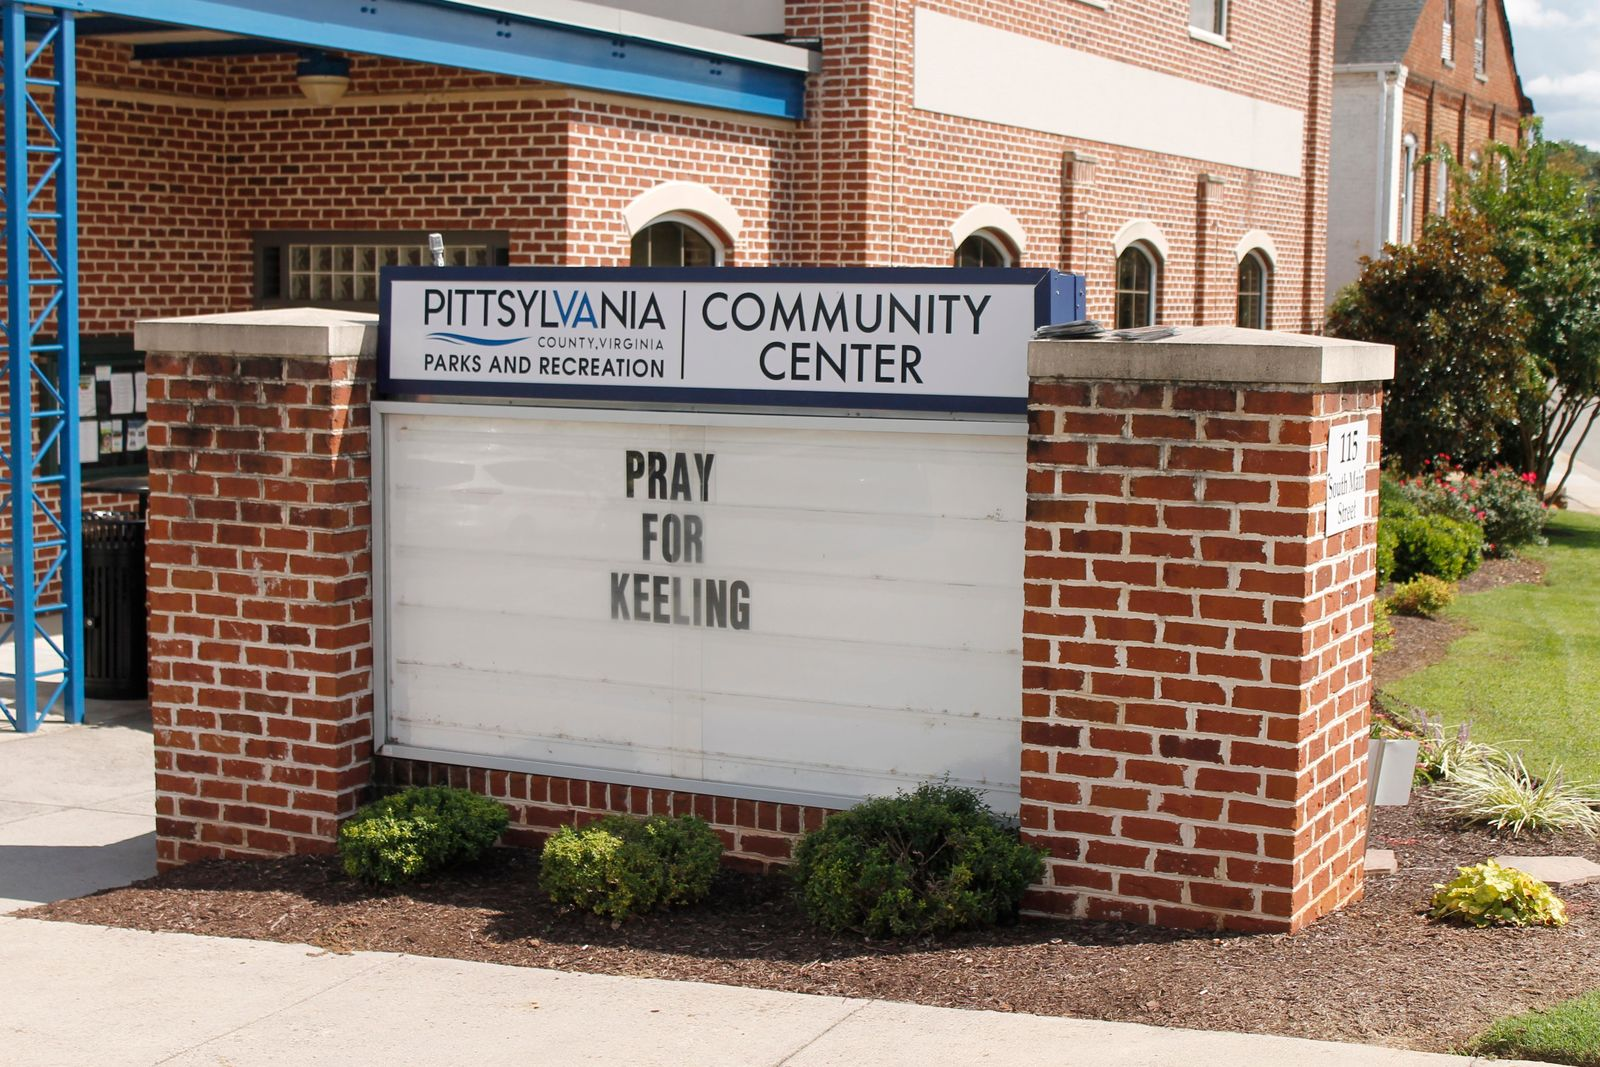 A sign in front of the Pittsylvania County Community Center in Chatham, Virginia, on Wednesday, Aug. 28, 2019, expresses a call for prayers for the small town of Keeling, Virginia, where three people were shot and killed on Aug. 27. (AP Photo/Skip Foreman)